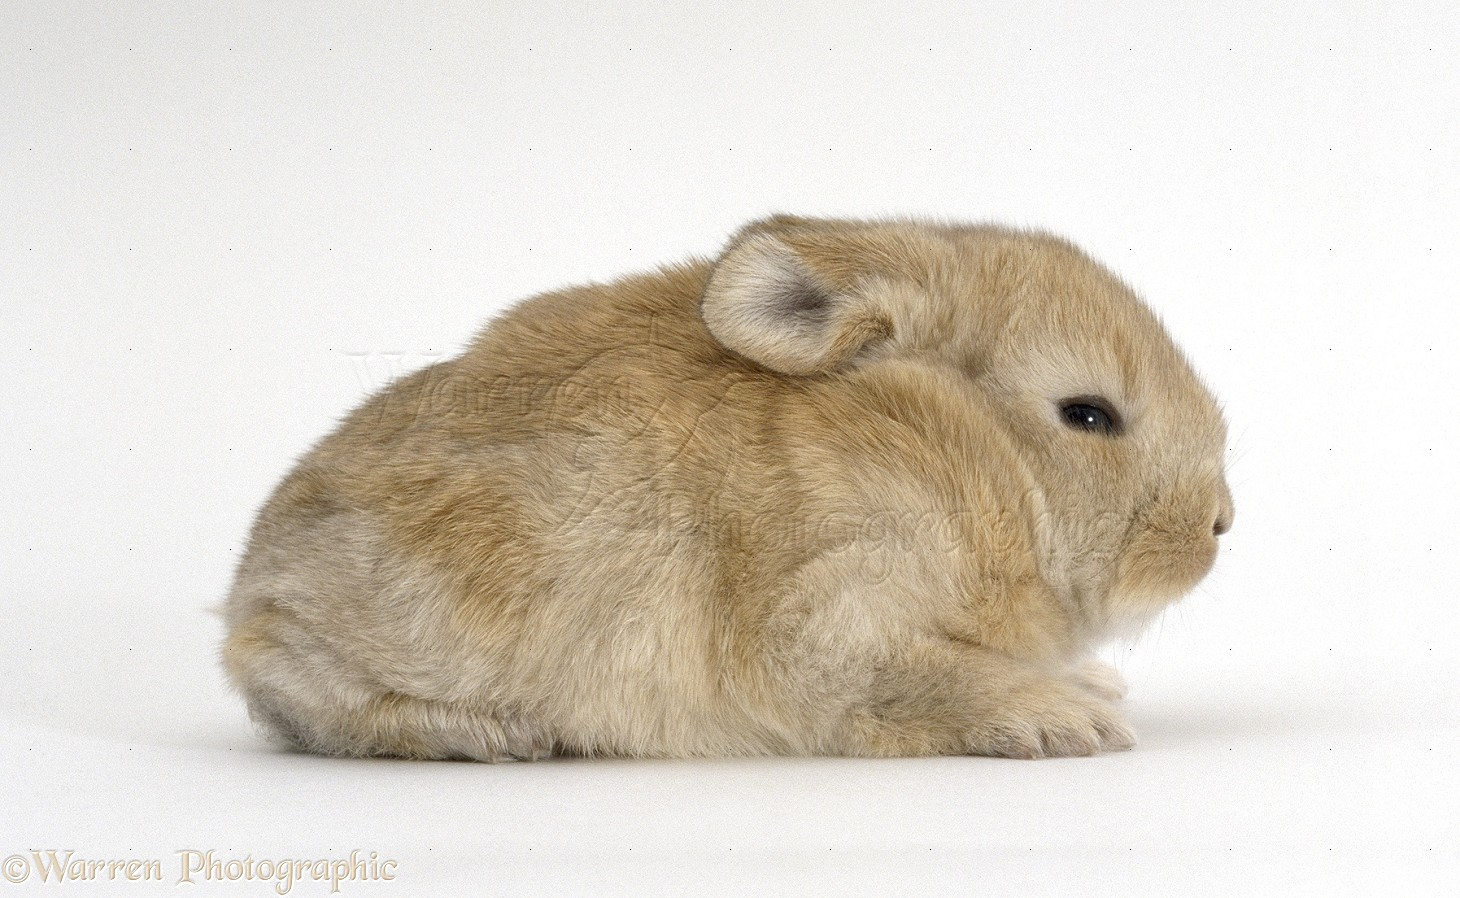 Baby lop eared rabbit - photo#13